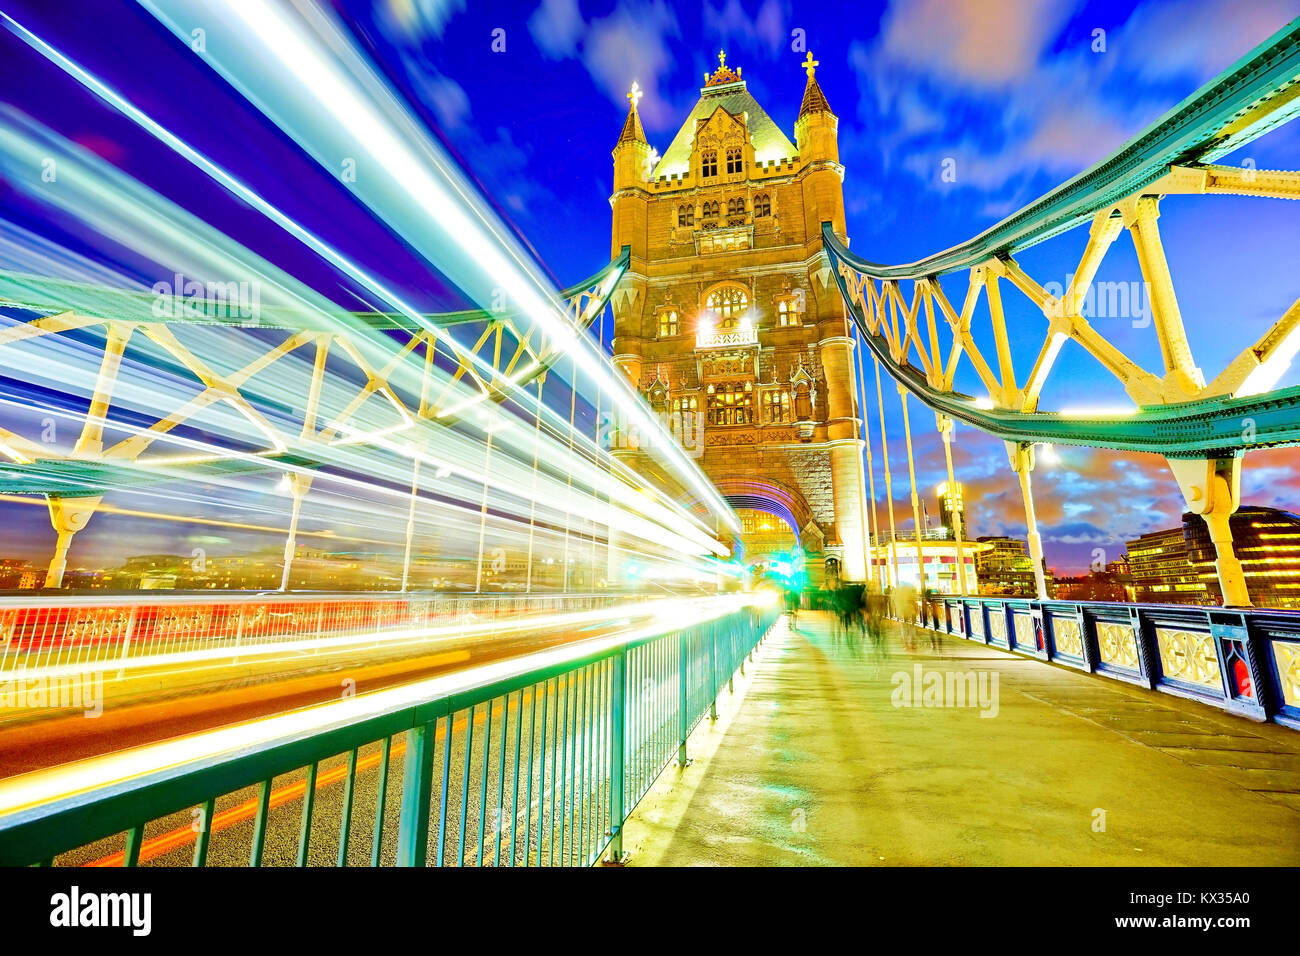 View of Tower Bridge in London at night - Stock Image